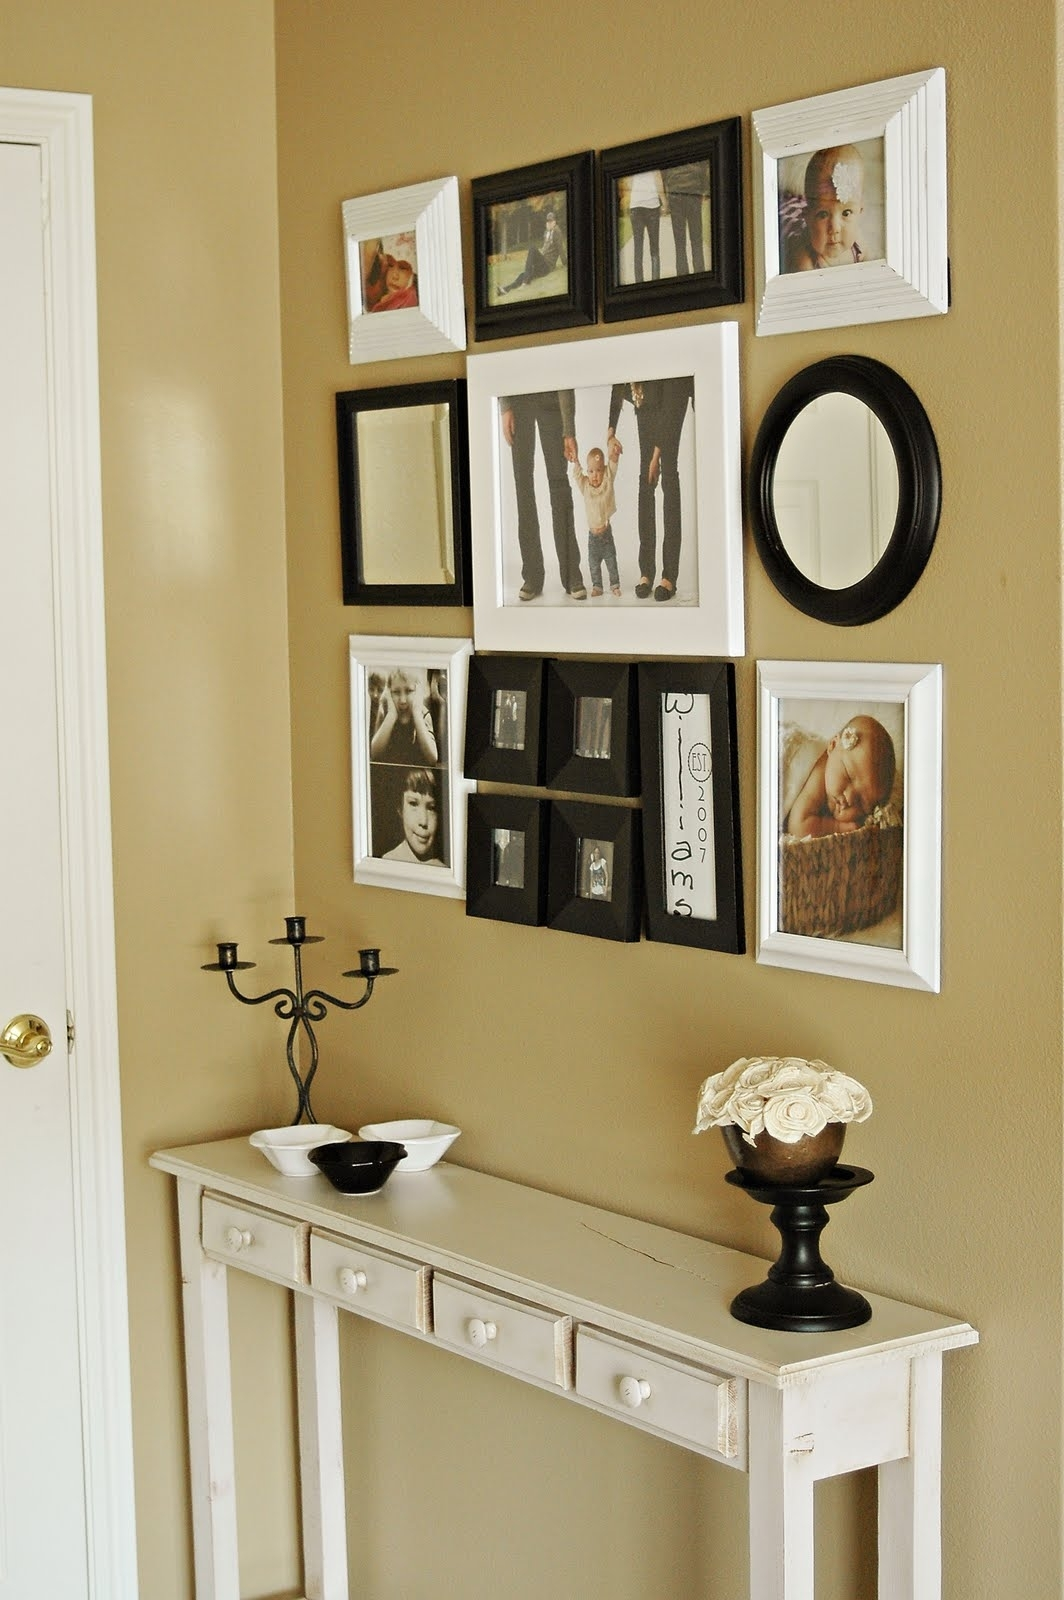 Interior | Photo Gallery Idea Entryway Wall Decor – Entryway With Regard To Recent Entrance Wall Accents (View 6 of 15)